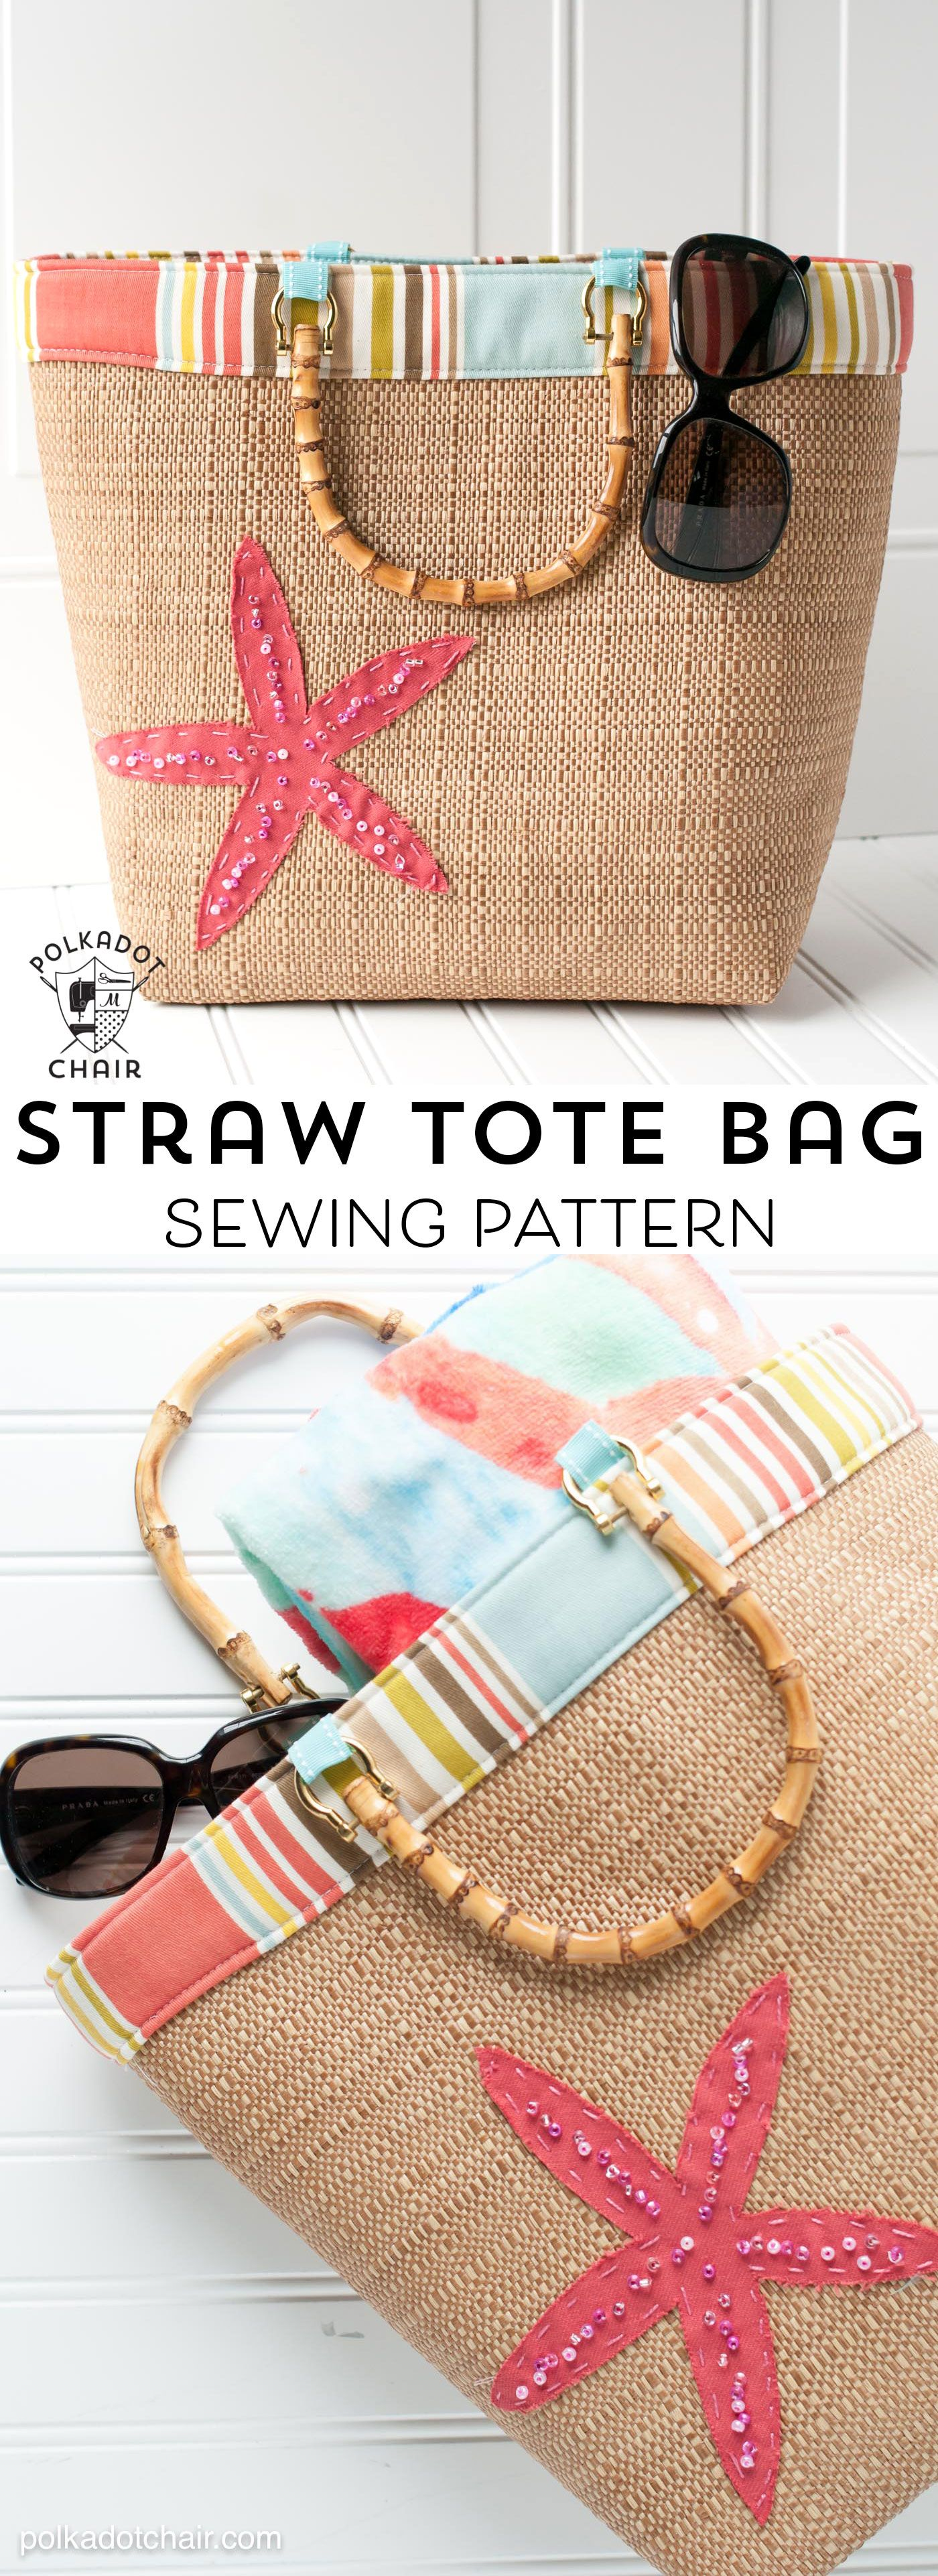 Beach bound straw tote a beach bag sewing pattern straw tote beach bound straw tote a beach bag sewing pattern jeuxipadfo Gallery